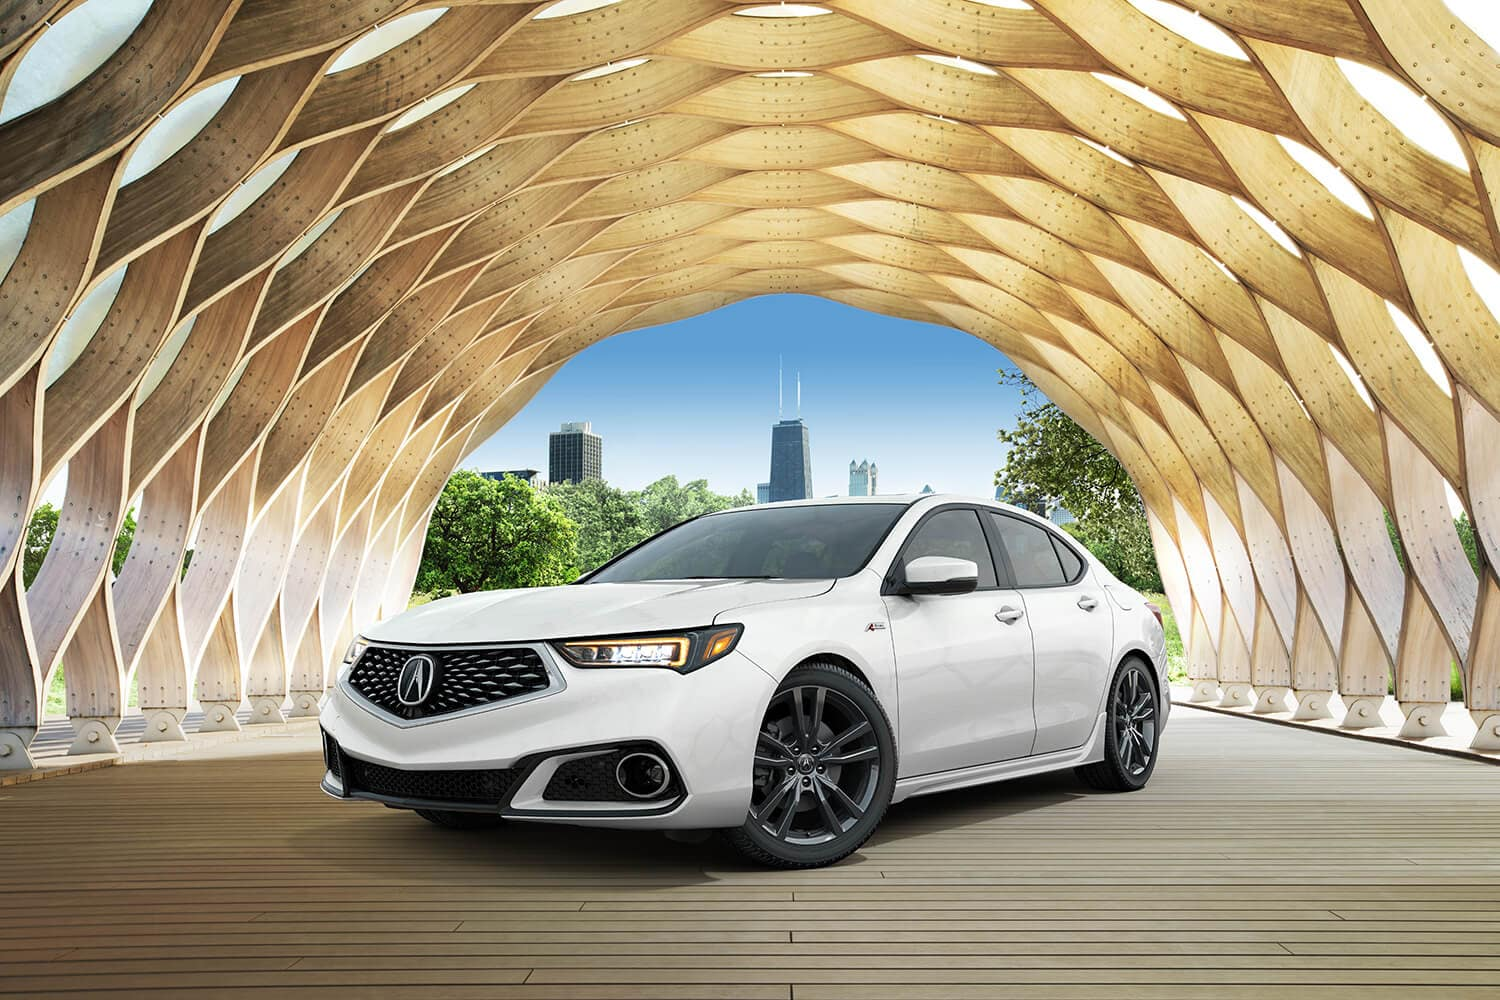 2019 Acura TLX Exterior City Driver Side